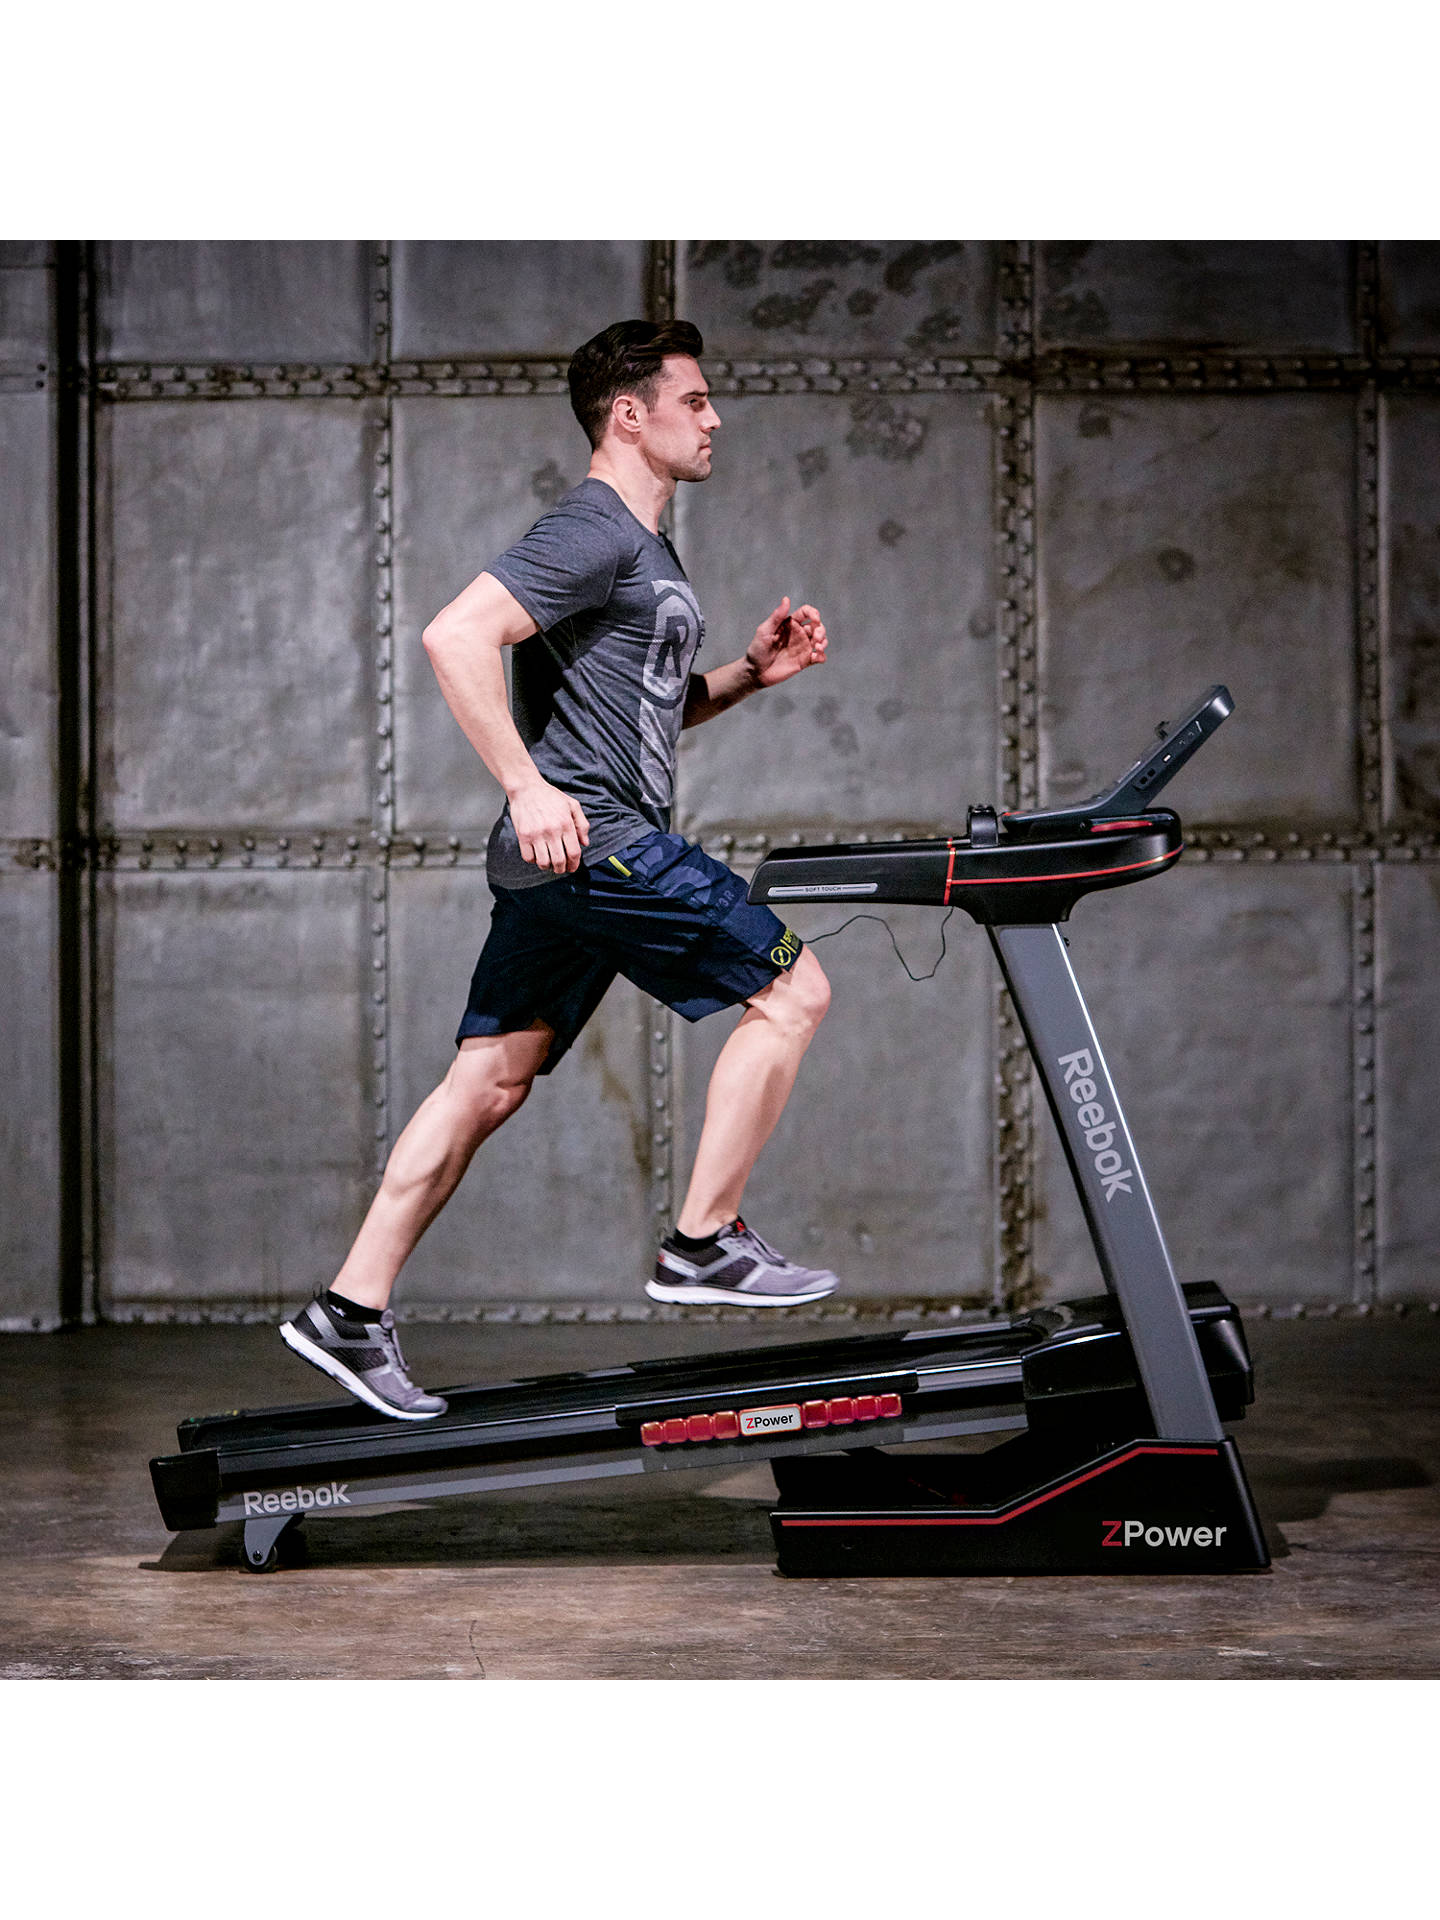 BuyReebok Z-Power Treadmill, Black Online at johnlewis.com